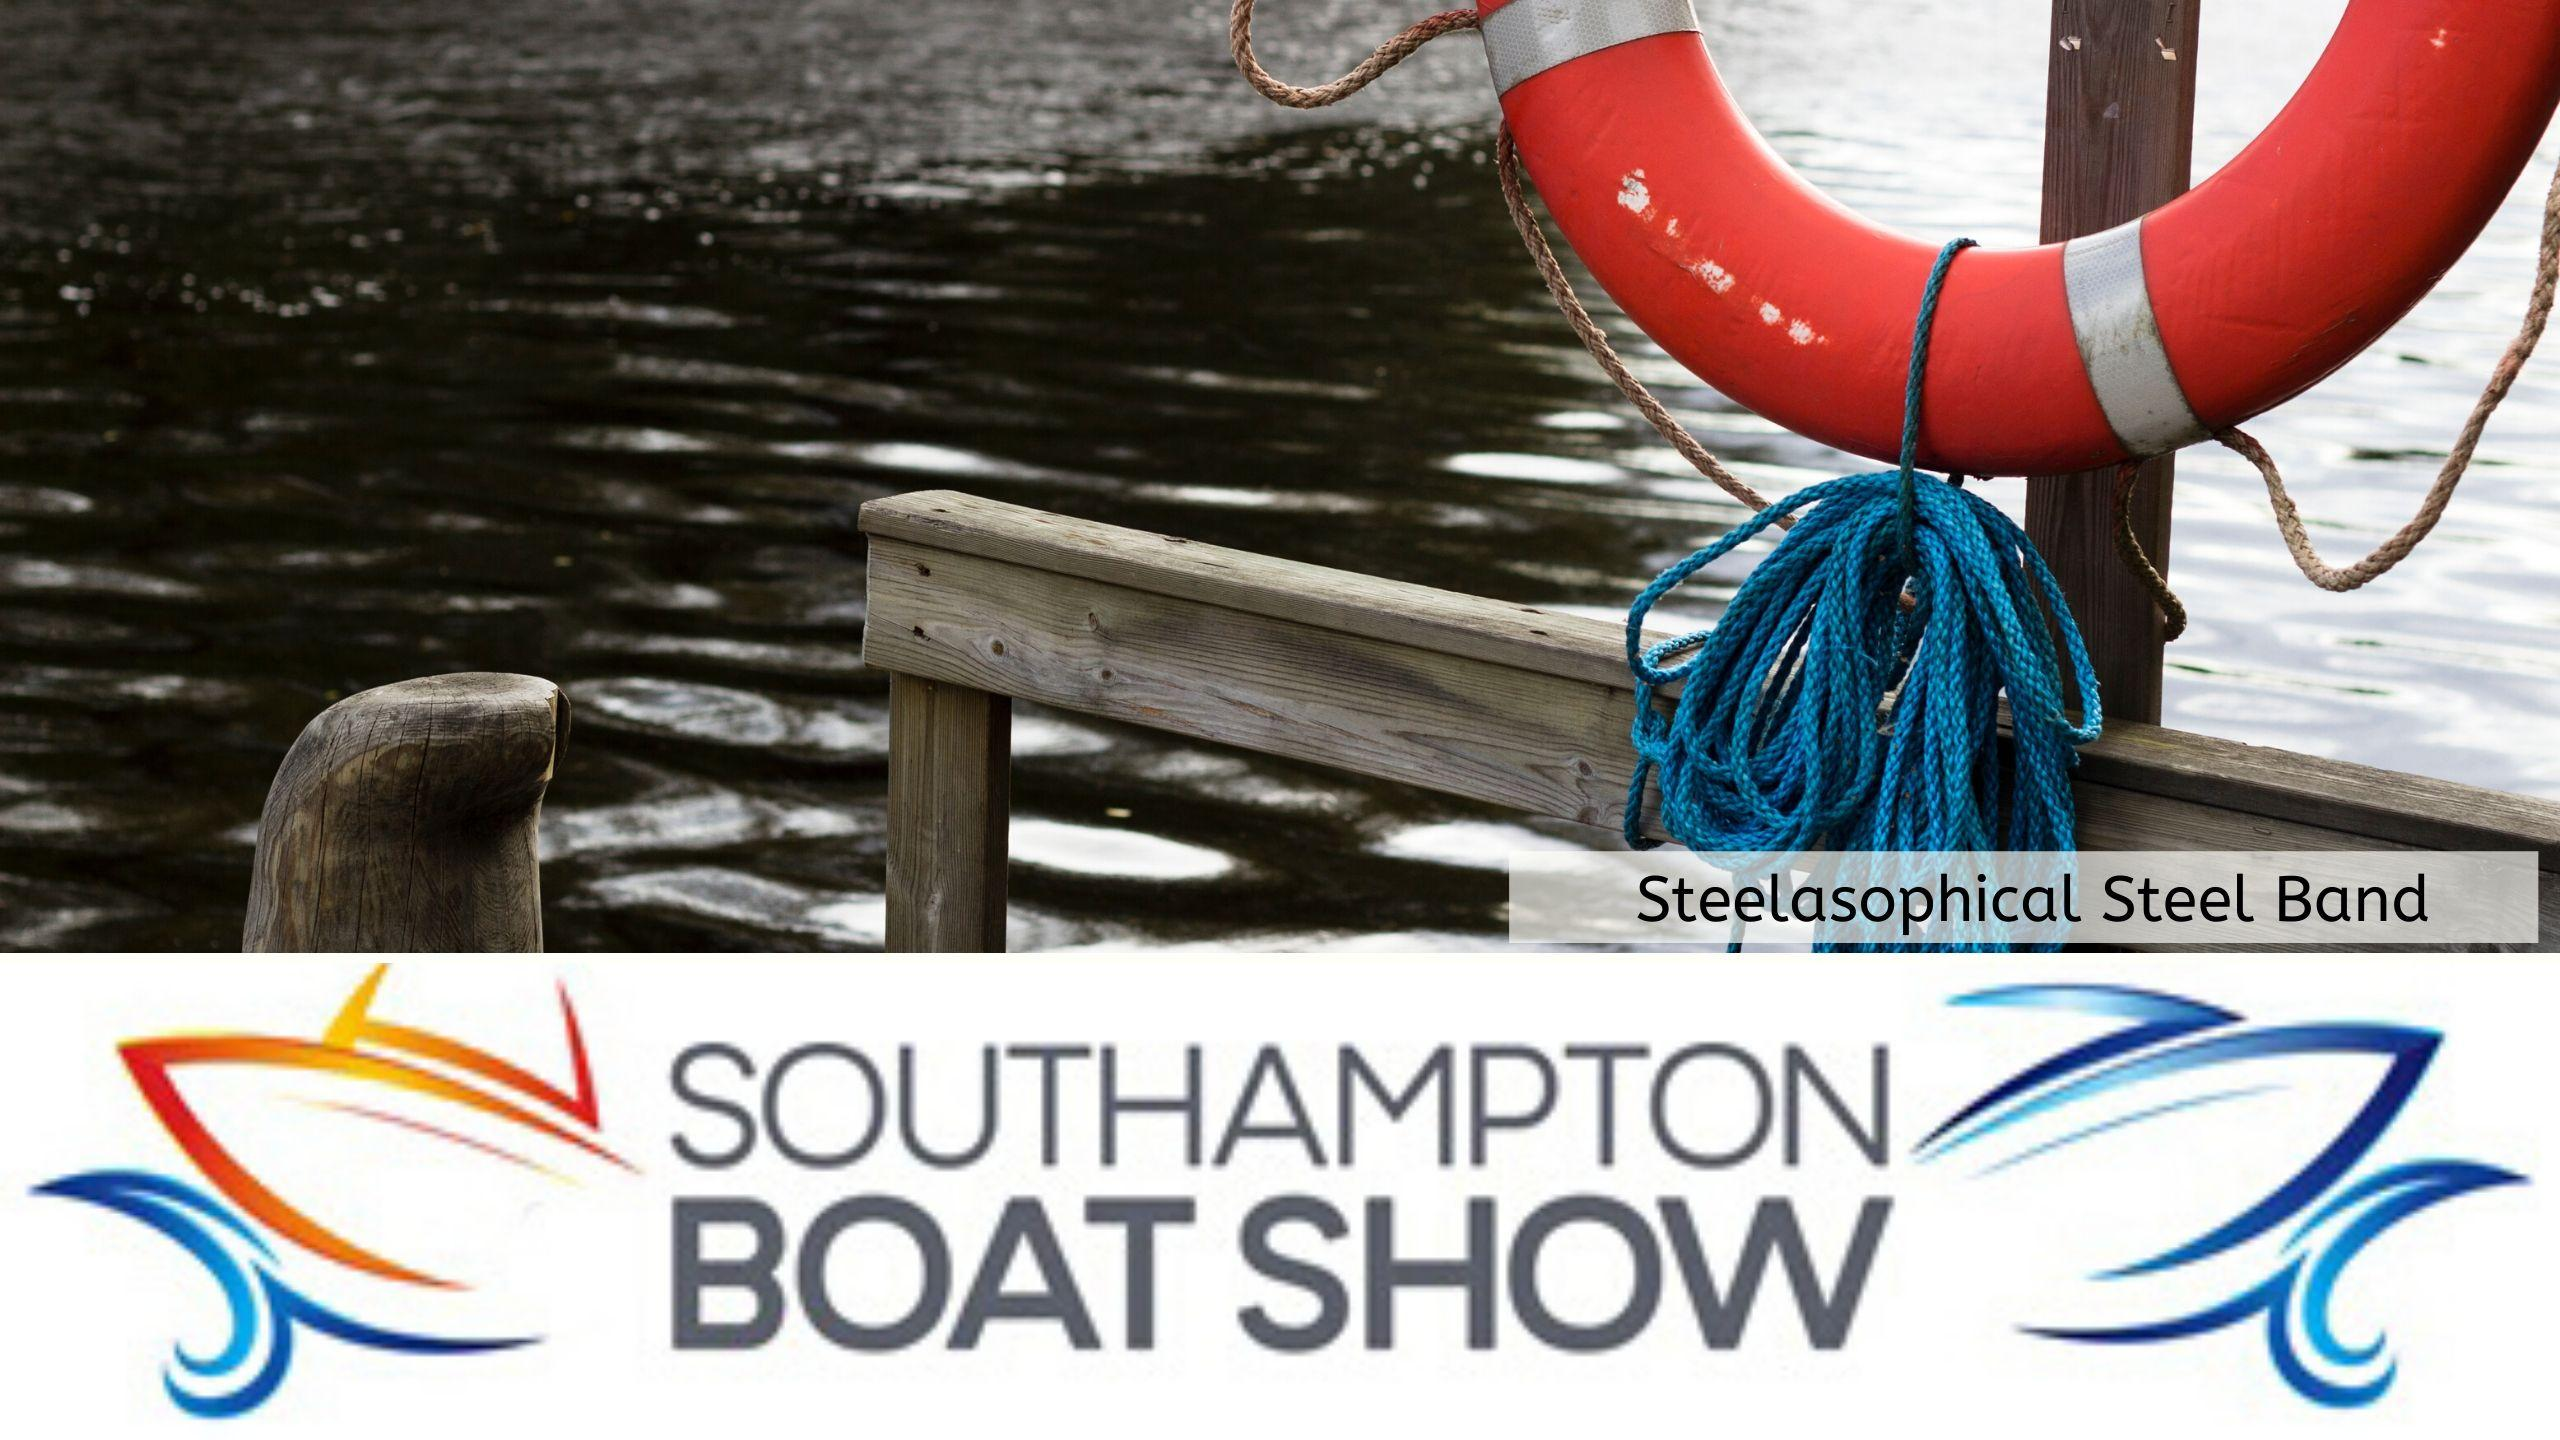 Steelasophical Steel Band Southampton Boat Show Yacht Market Entertainment 00